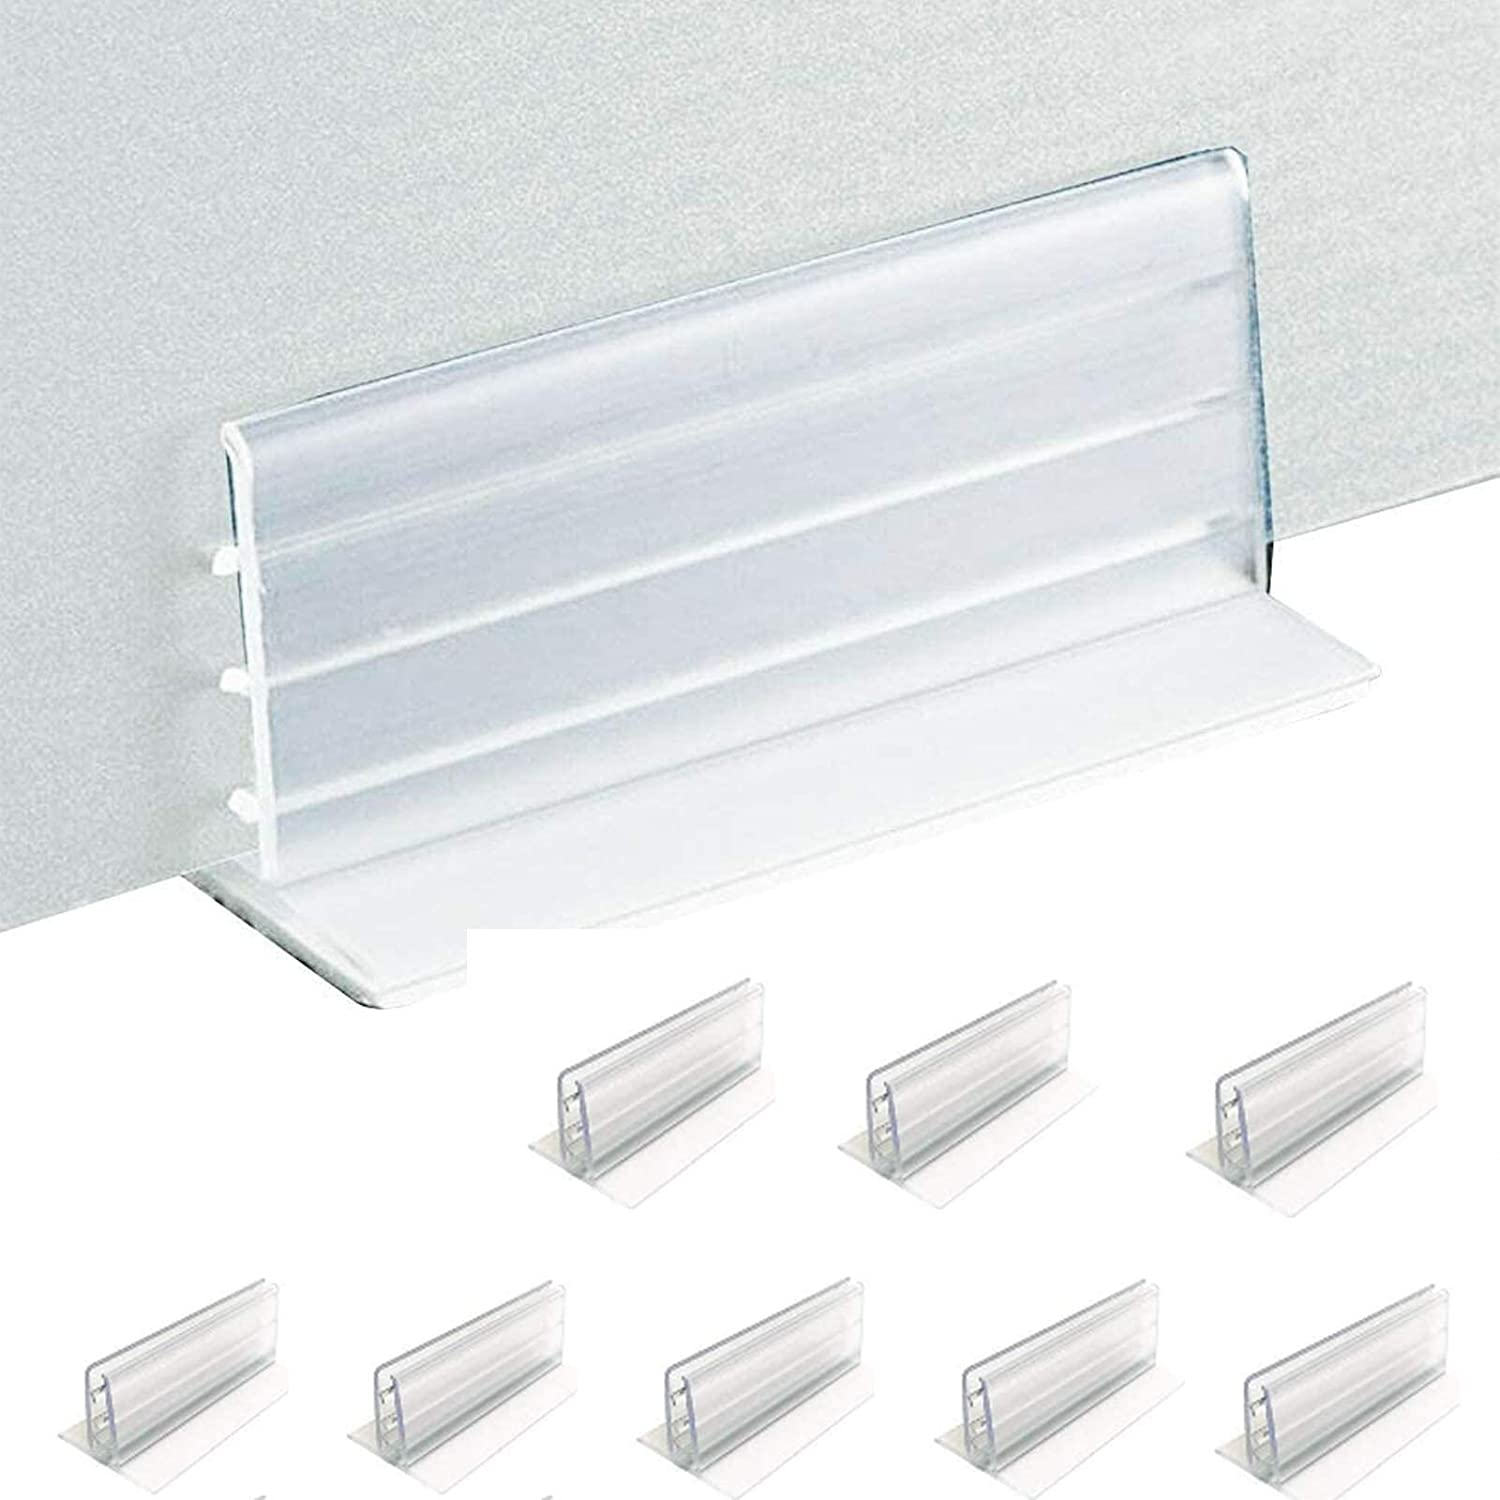 """8/16 Pcs Adhesive Sneeze Guard Holders, Office Desk Partition Brackets-Freestanding Personal Protection Shield Accessories to Fasten Acrylic Panels & Plexiglass Sheets 3/16"""" to 1/4"""" Thick (8 PCS)"""